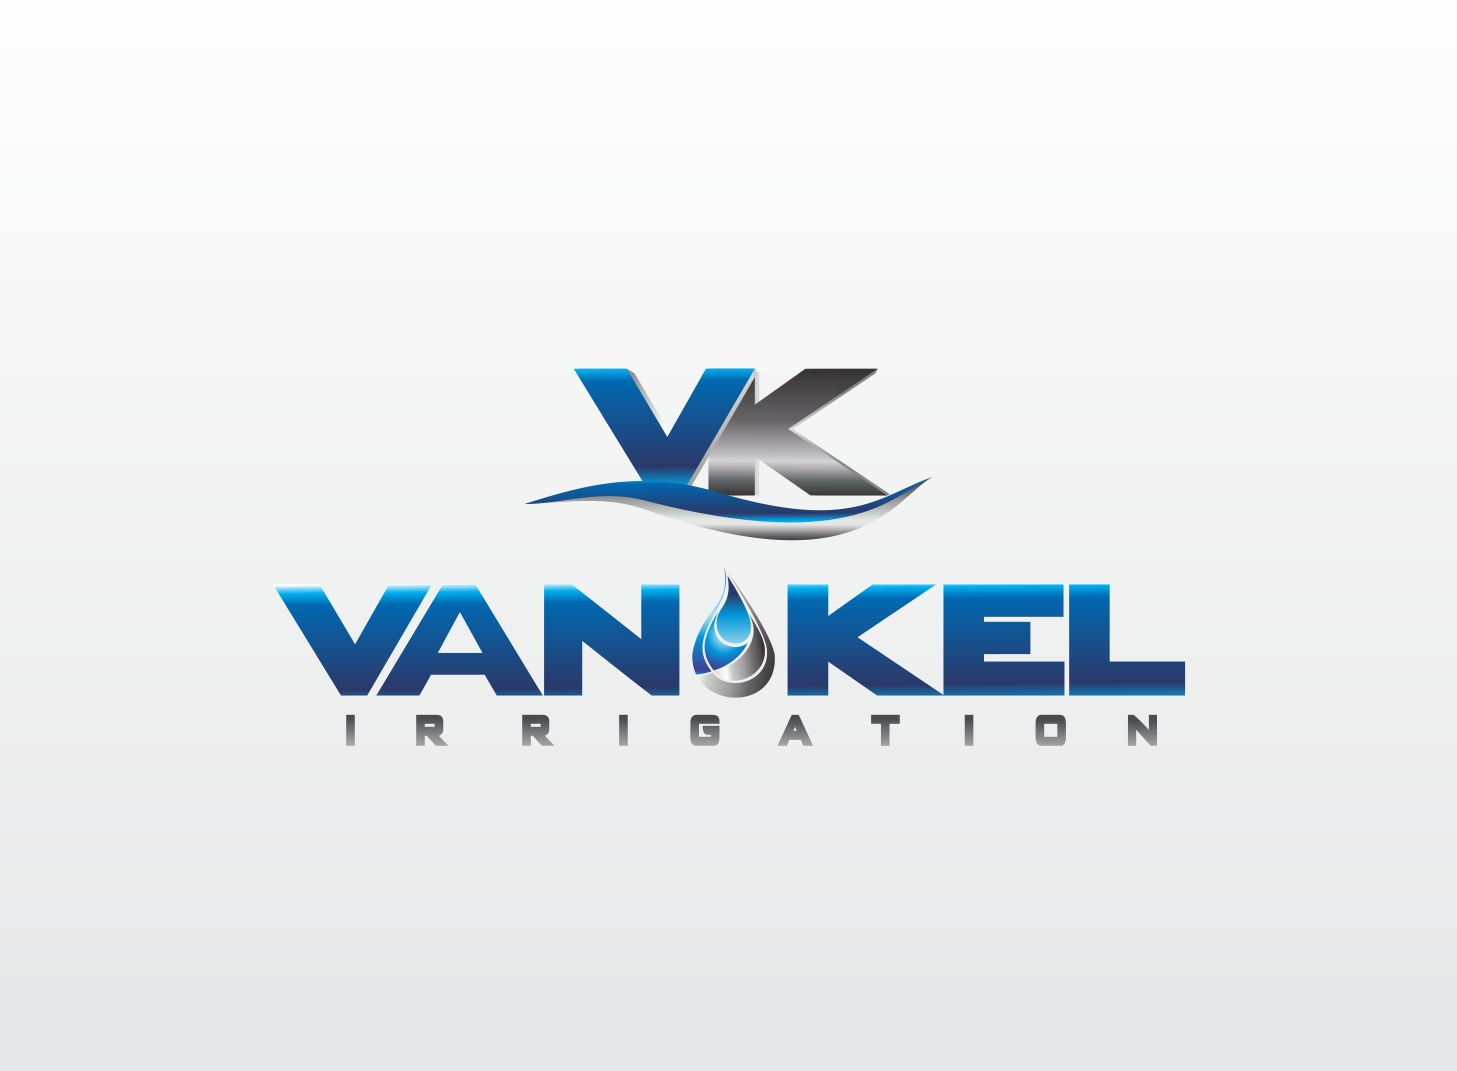 Logo Design by Zdravko Krulj - Entry No. 258 in the Logo Design Contest Van-Kel Irrigation Logo Design.